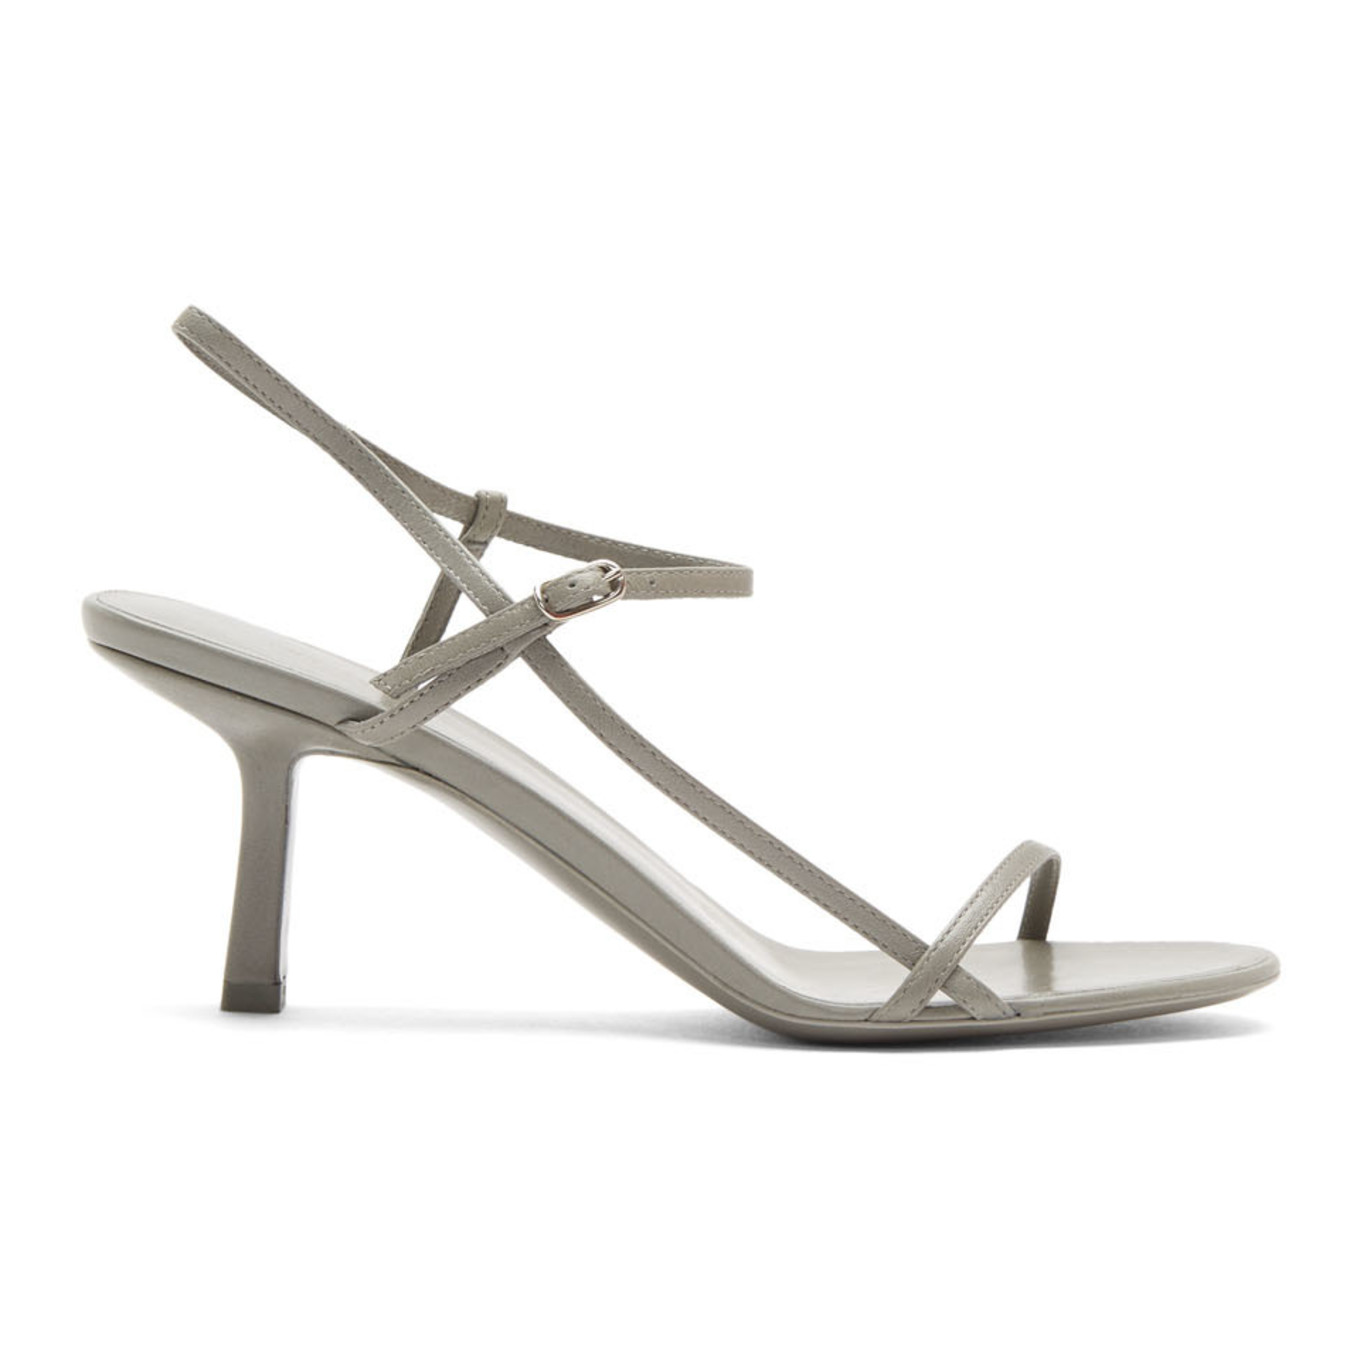 Grey Bare Heeled Sandals by The Row